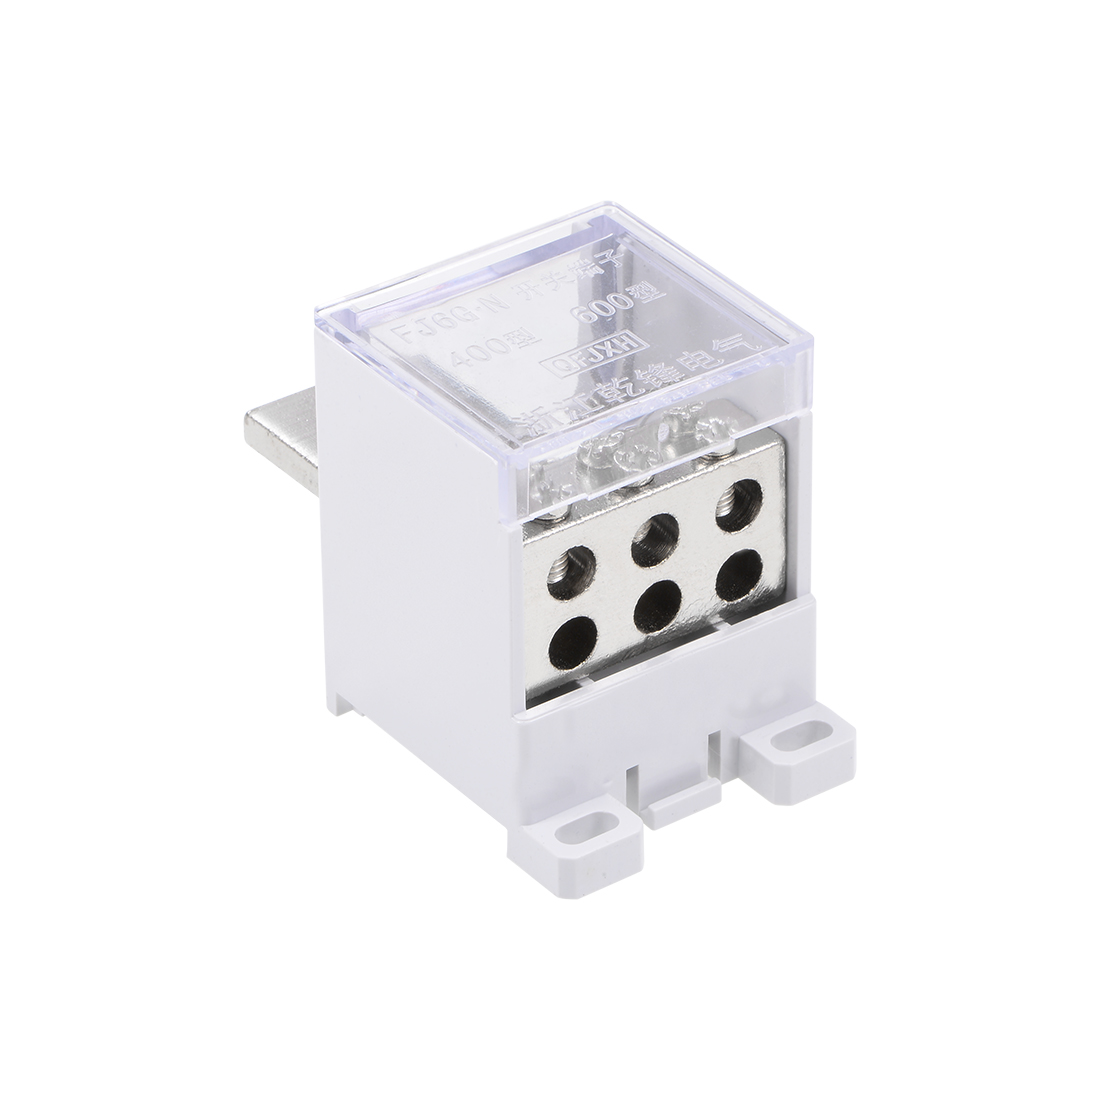 1 In 6 Out DIN Rail Terminal Blocks 400A Distribution Block for Circuit Breaker